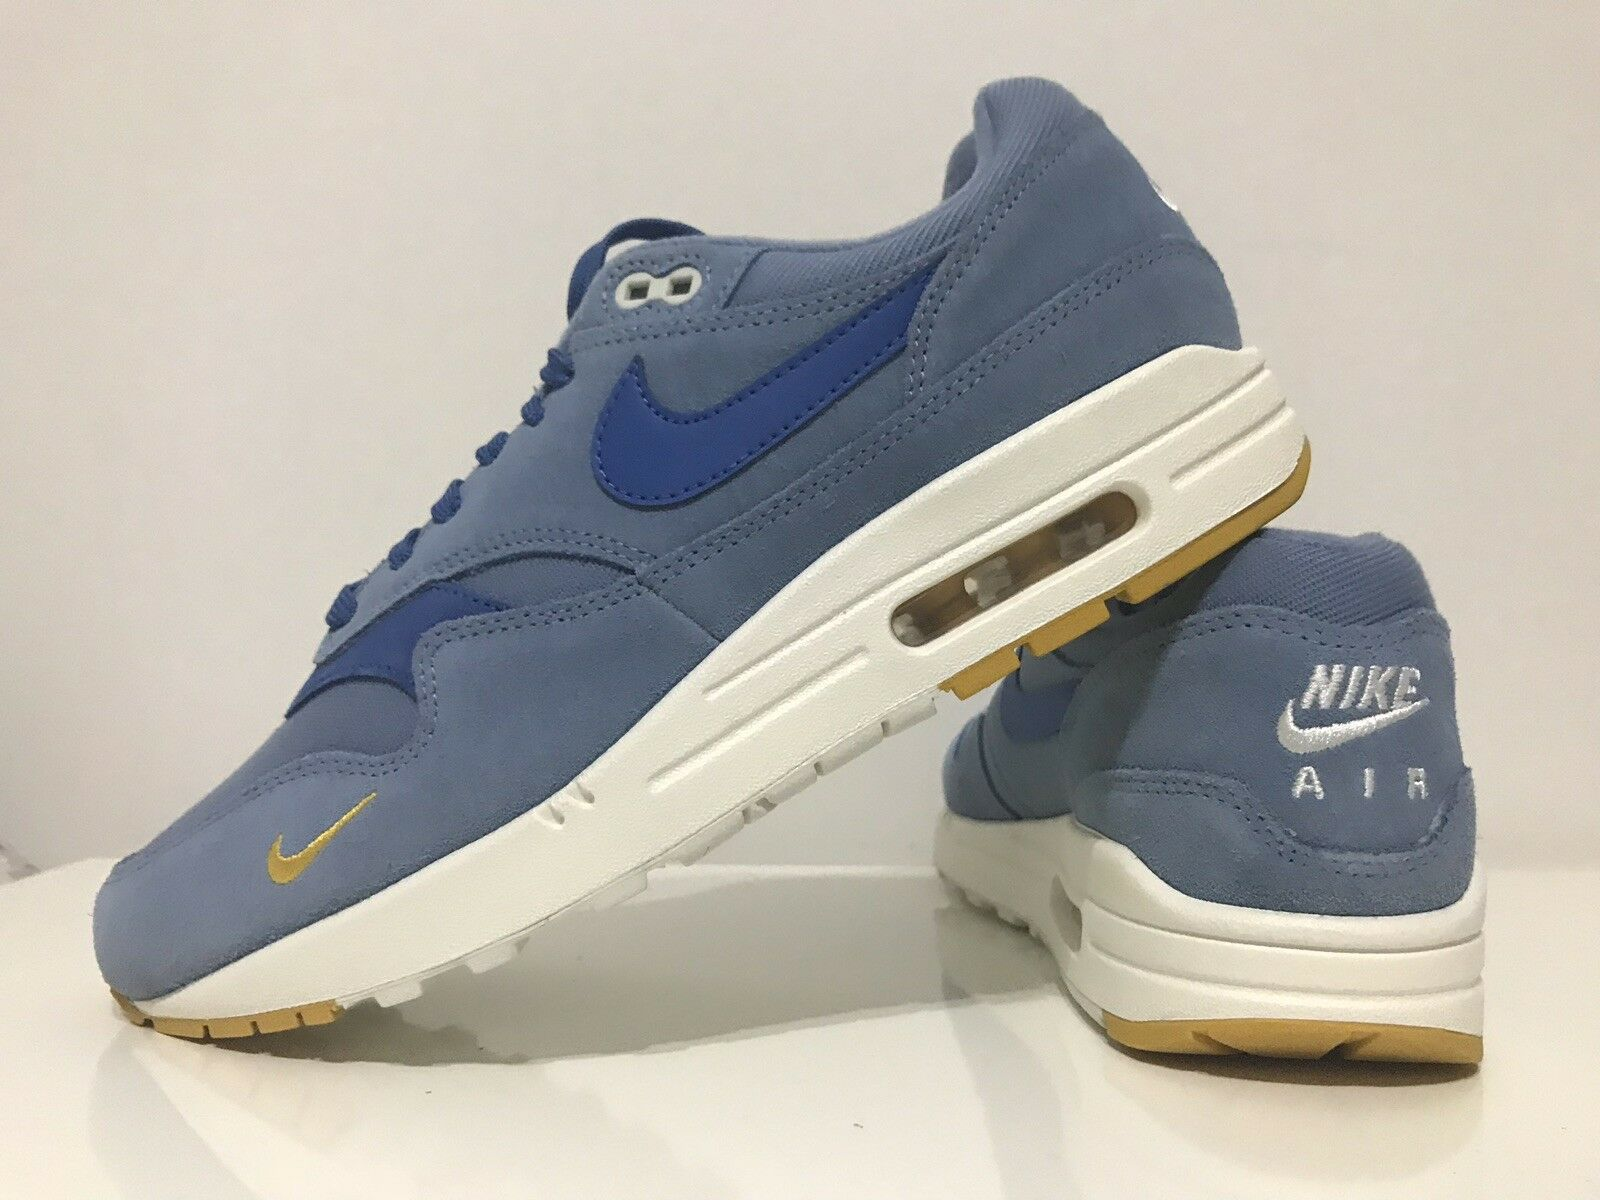 Nike Air Max 1 Premium Mini Swoosh - Blau   Gelb - UK 7,5 Limited Edition